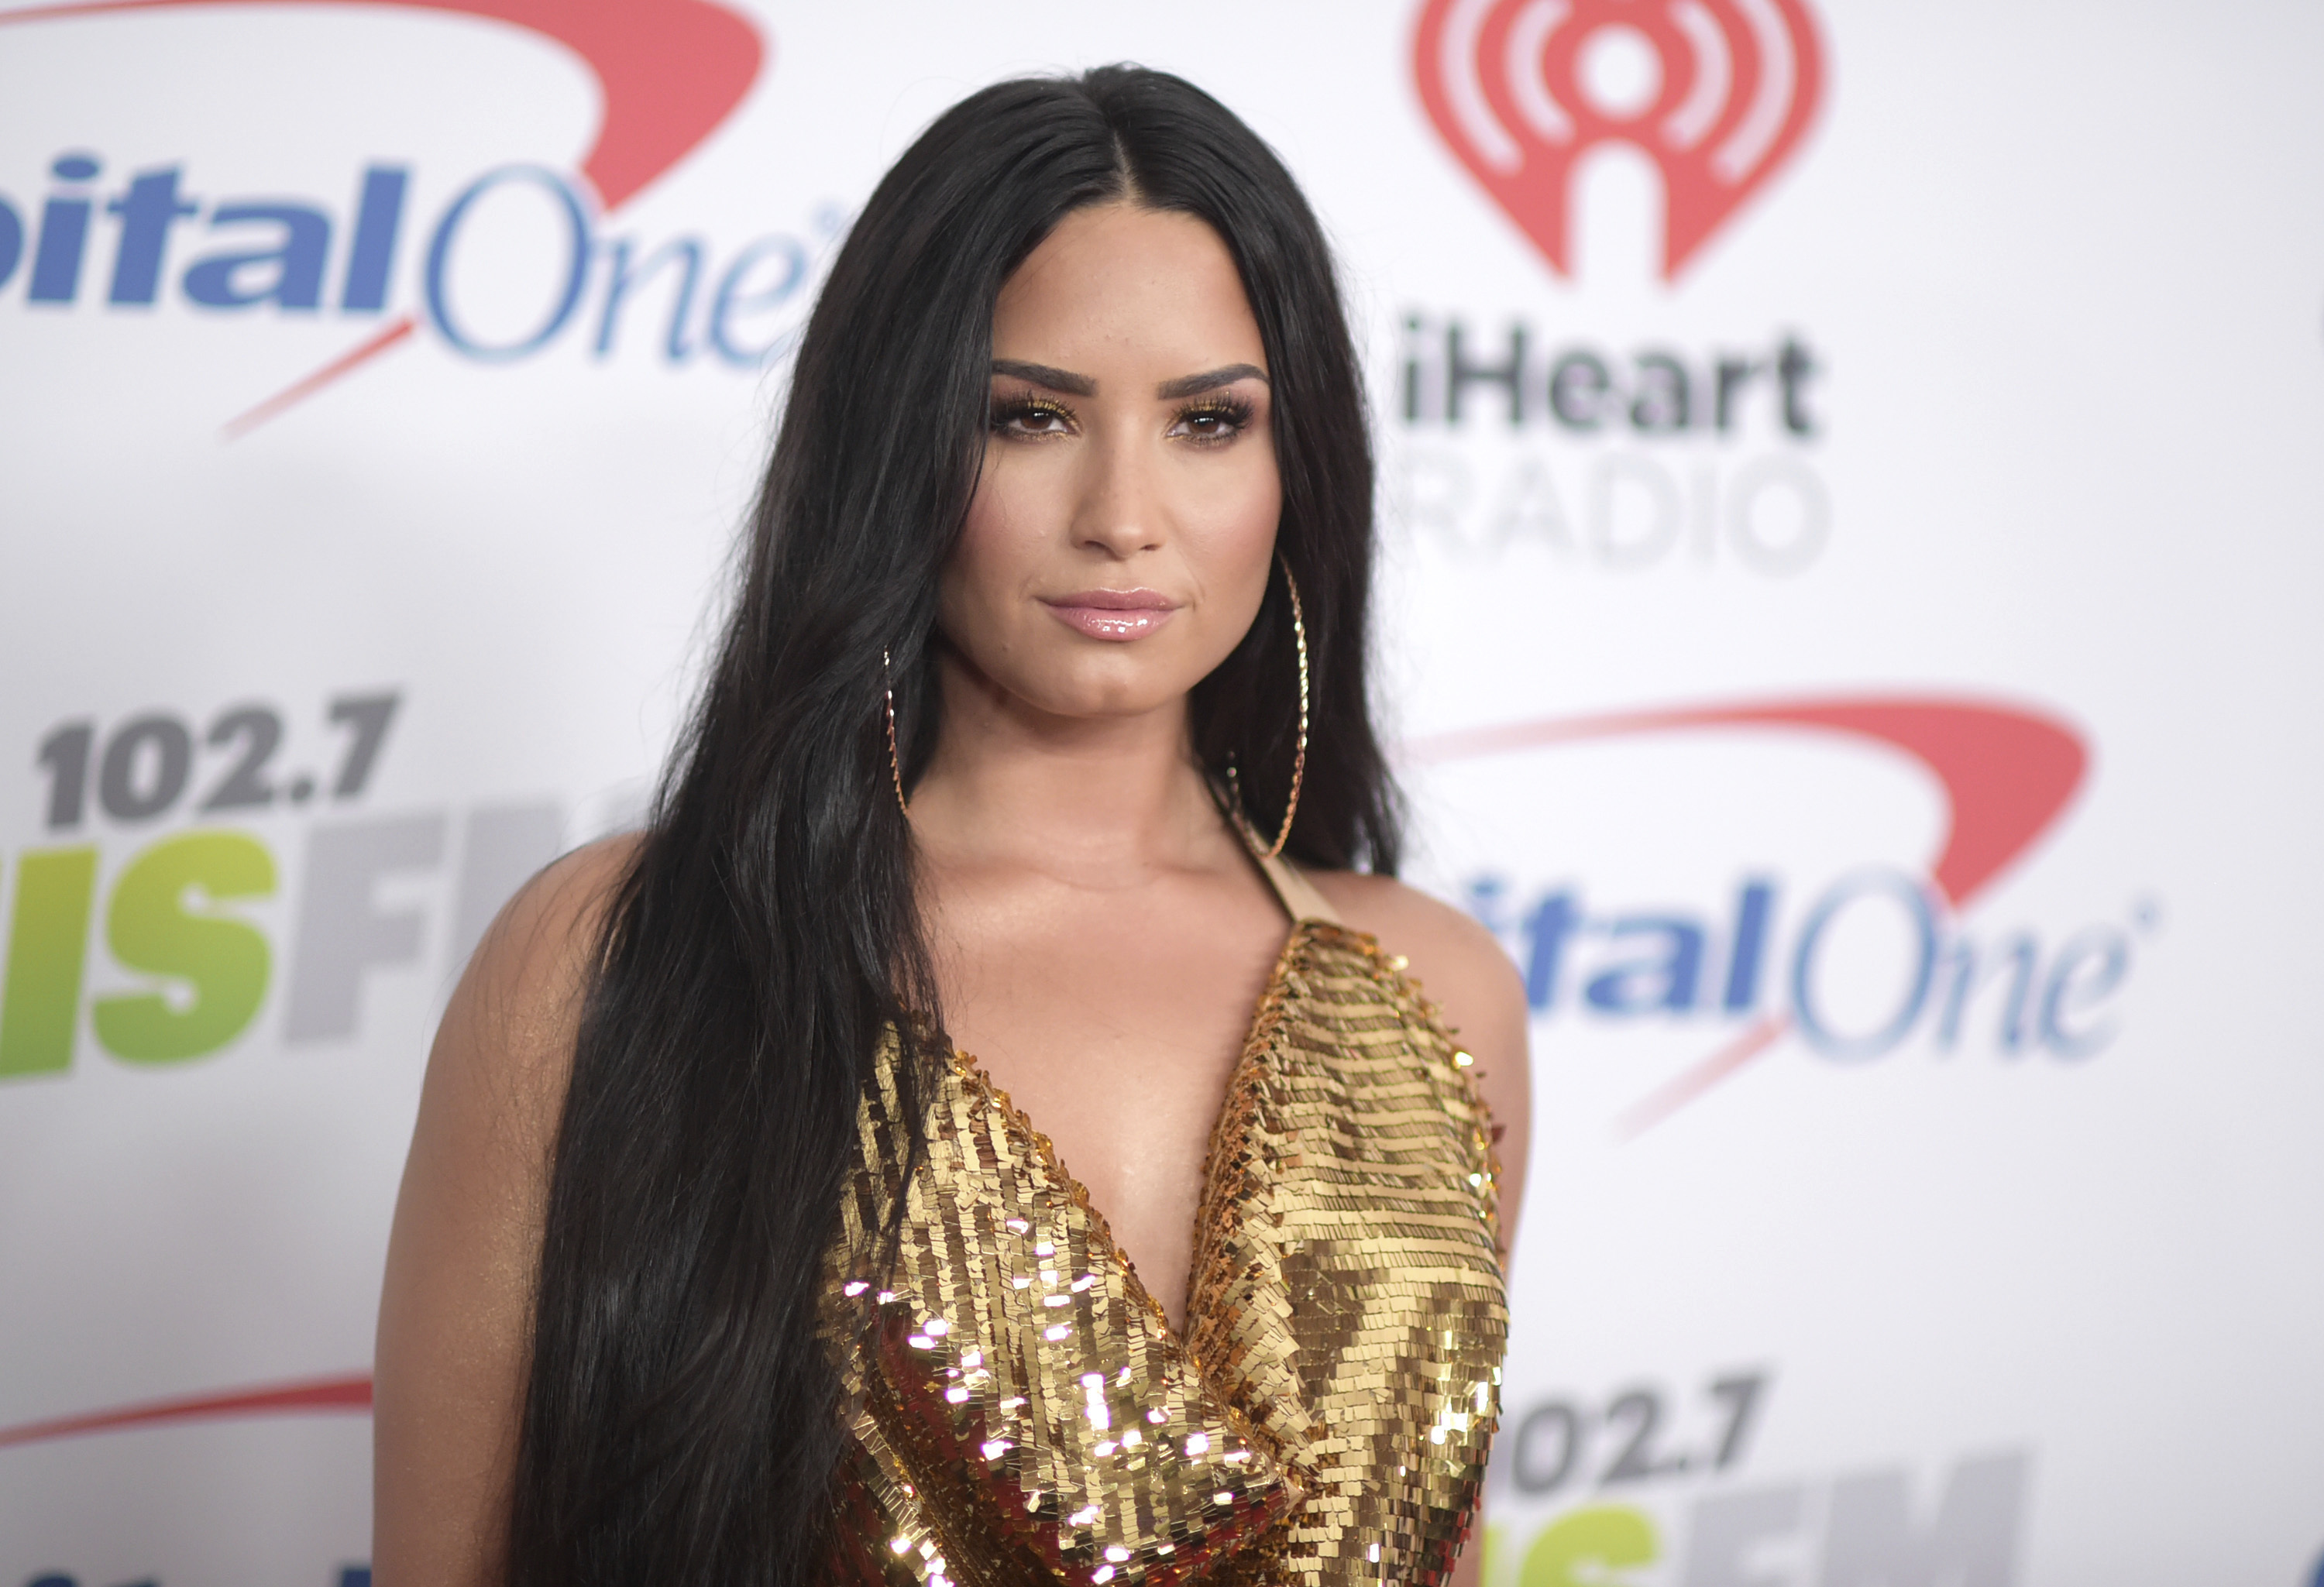 Demi Lovato arrives at Jingle Ball at The Forum in Inglewood, California in 2017.